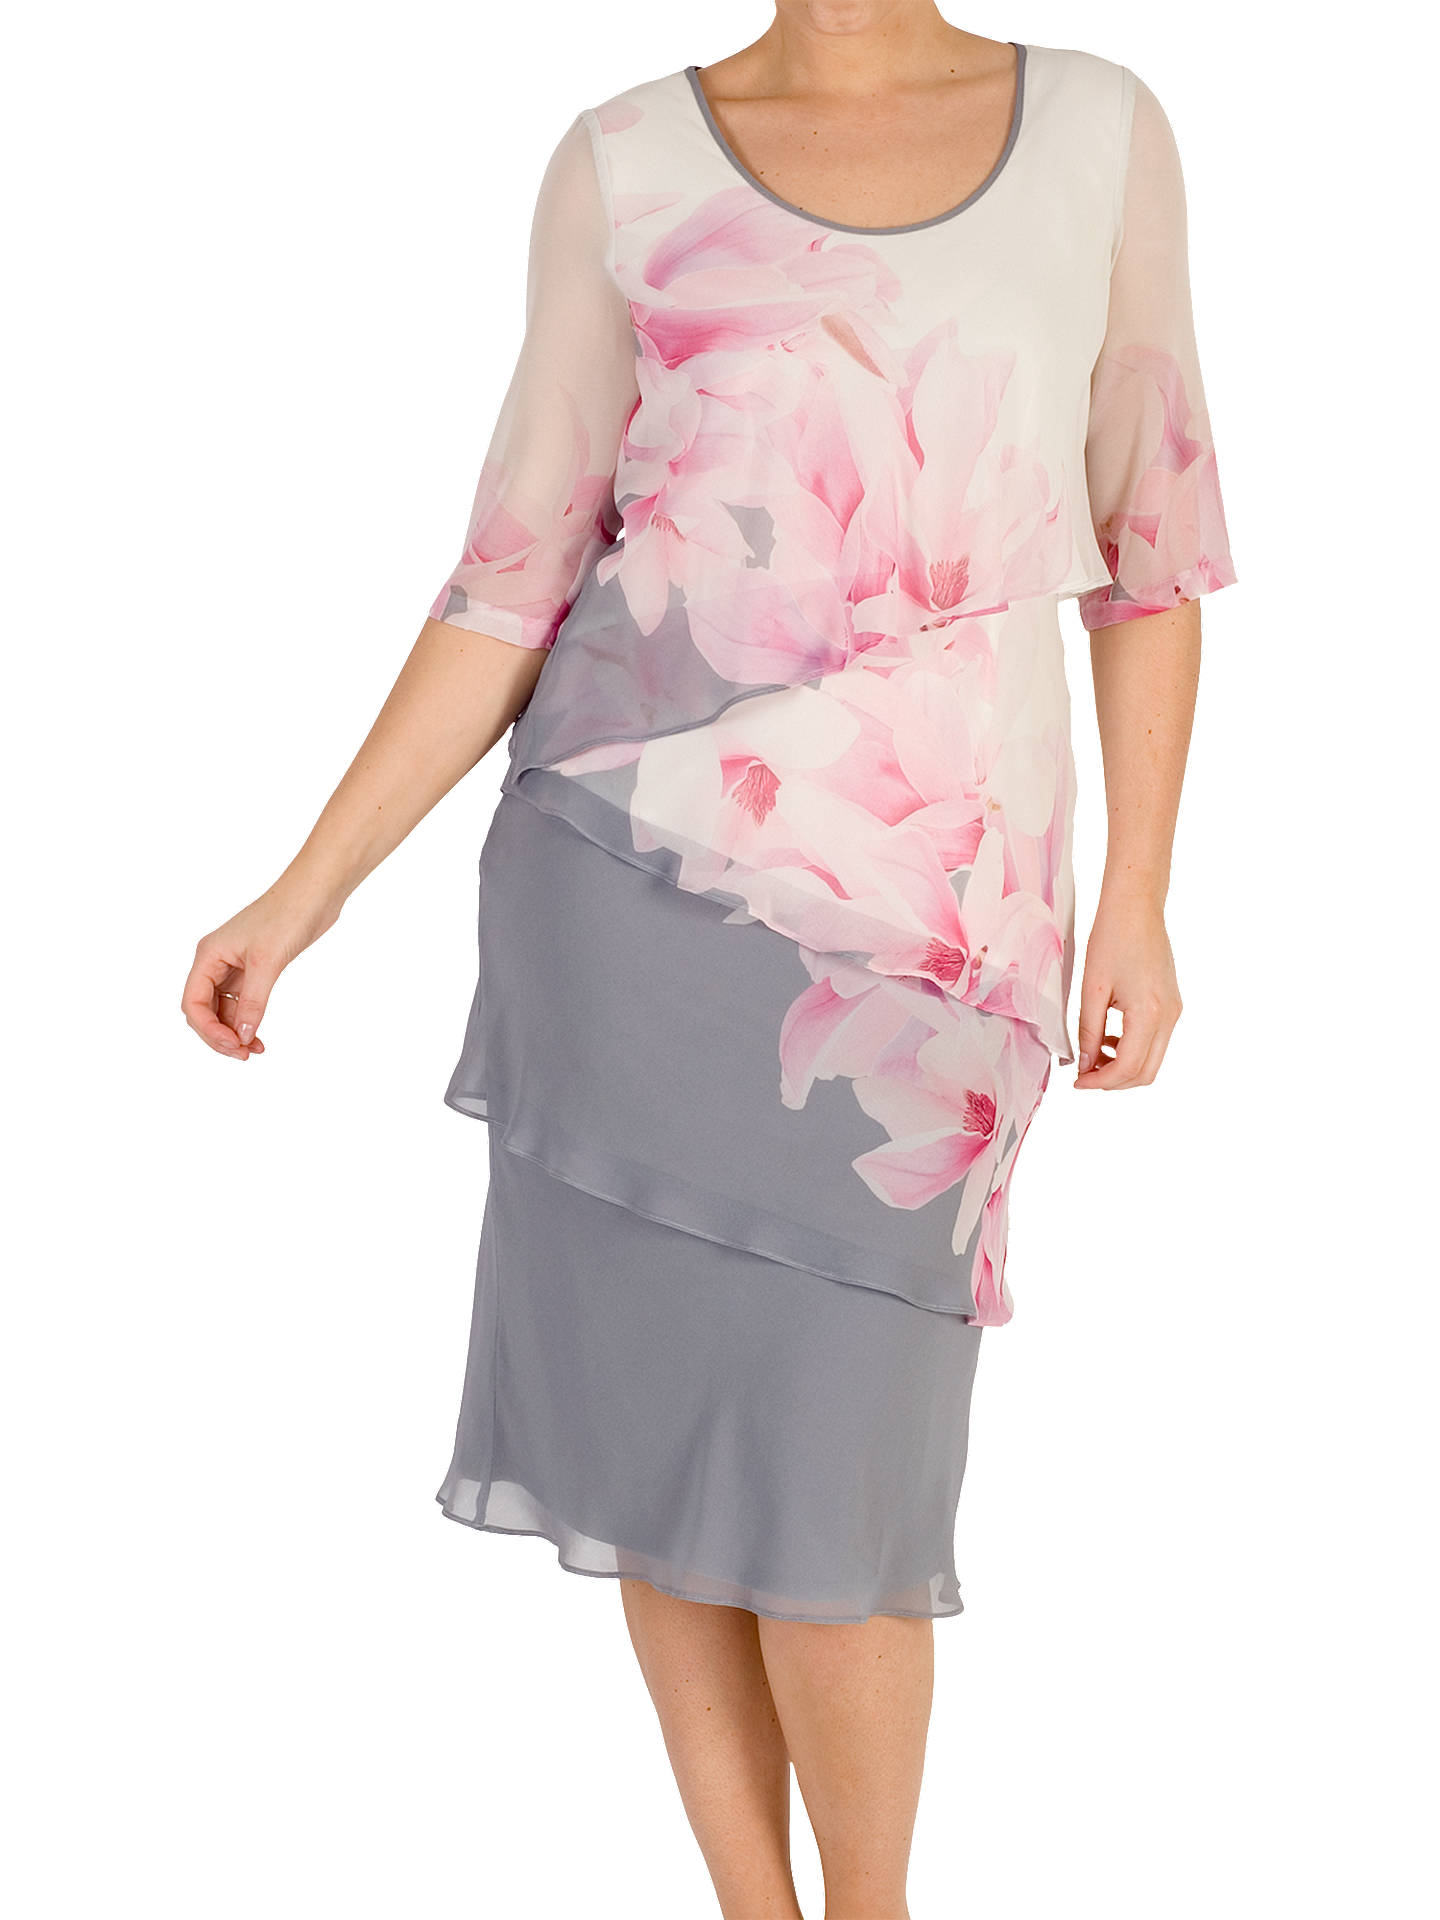 84ff0c657113 Buy Chesca Layered Chiffon Dress, Grey/Pink, 18 Online at johnlewis.com ...